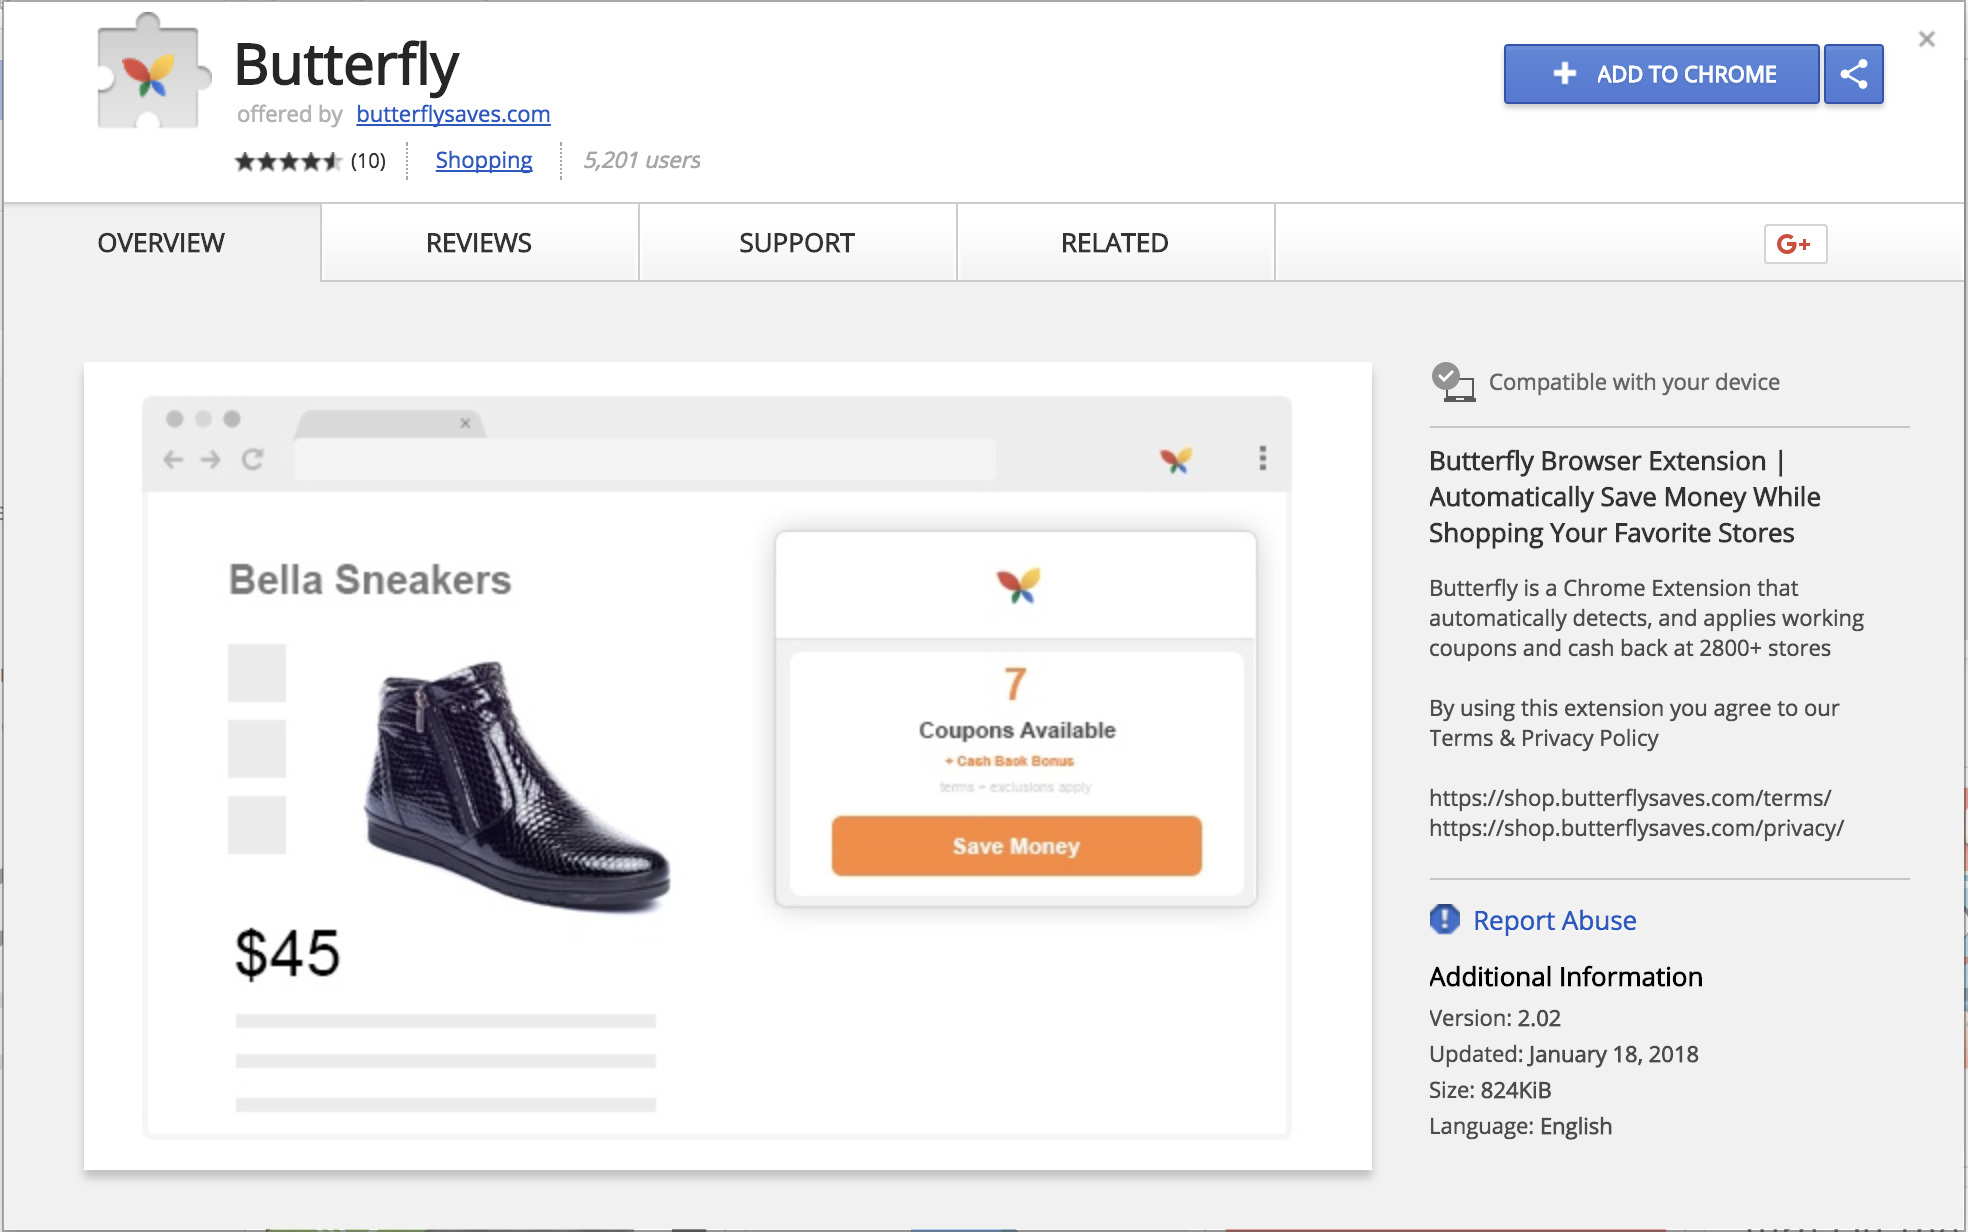 Butterfly Chrome Extension